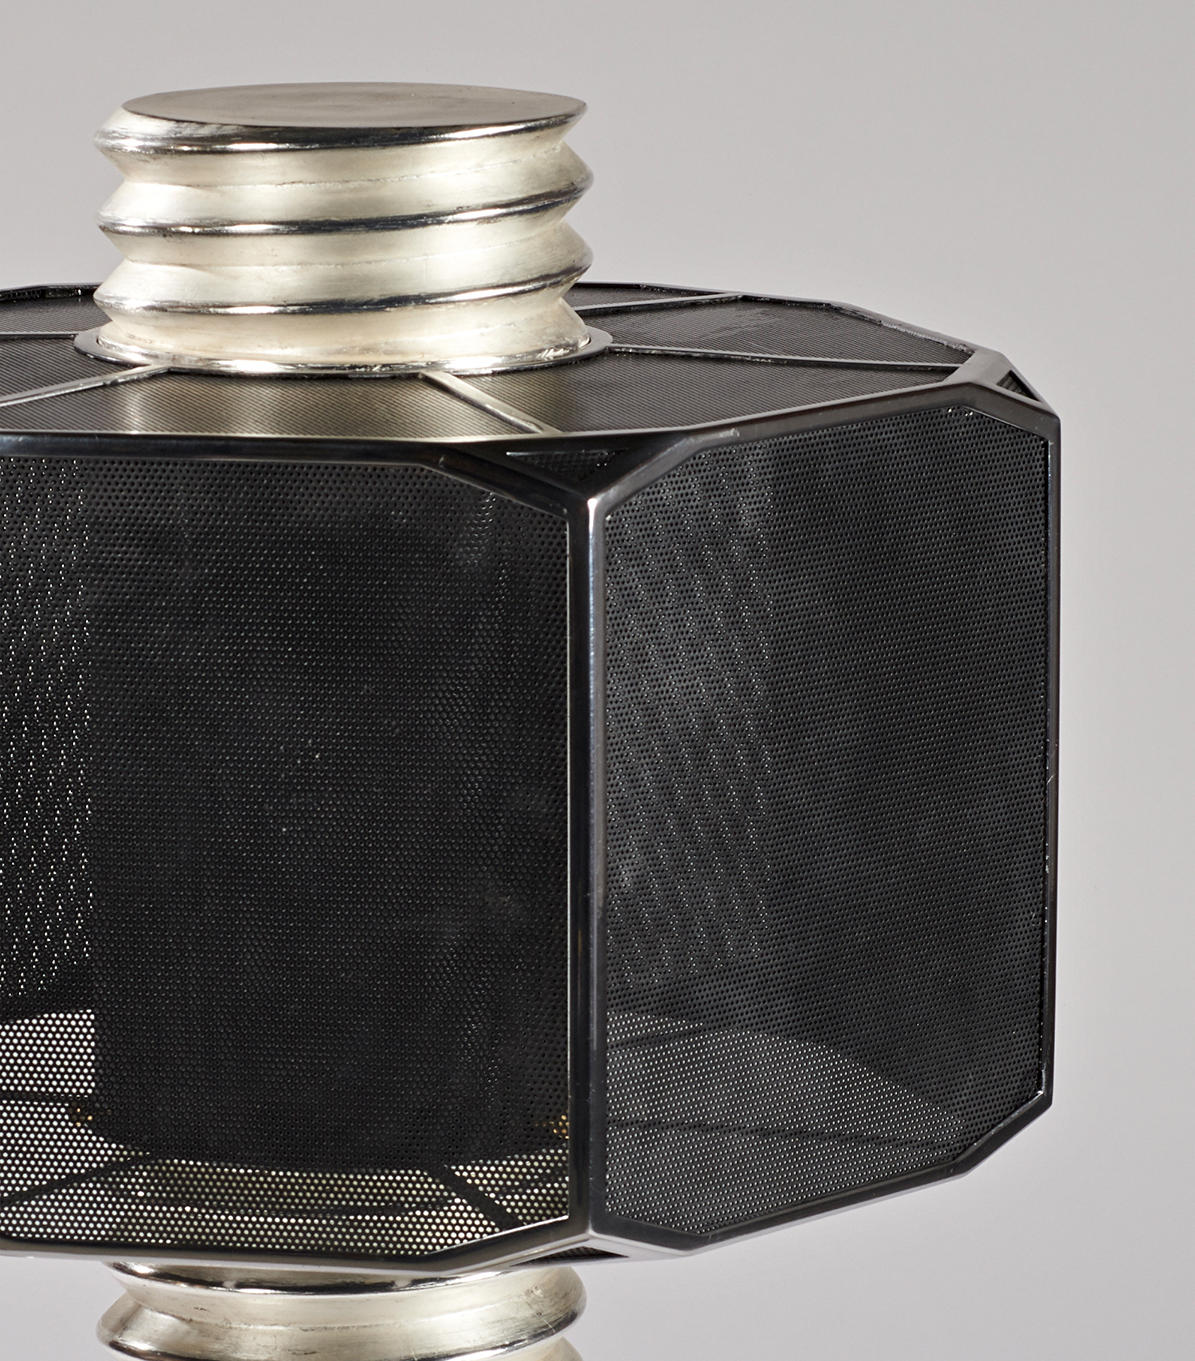 Maurice MARTY Lampe de Table, Table Lamp